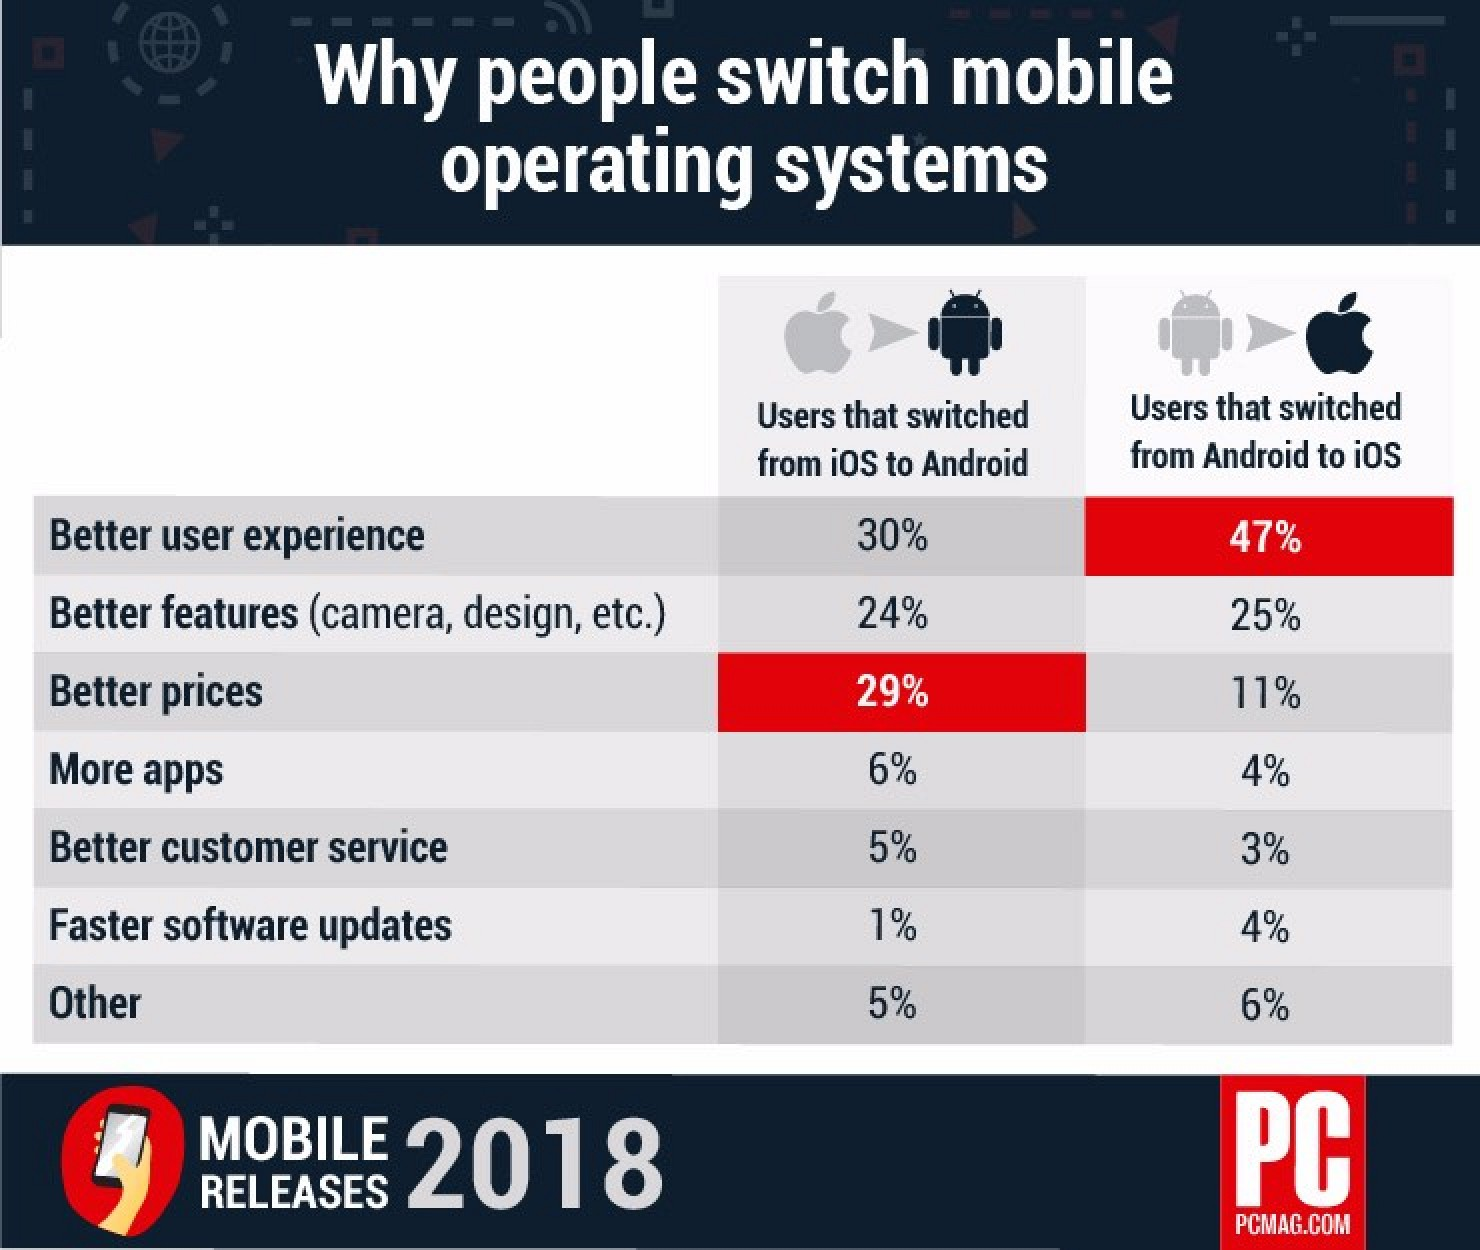 Survey Explores Why People Switch Mobile Operating Systems